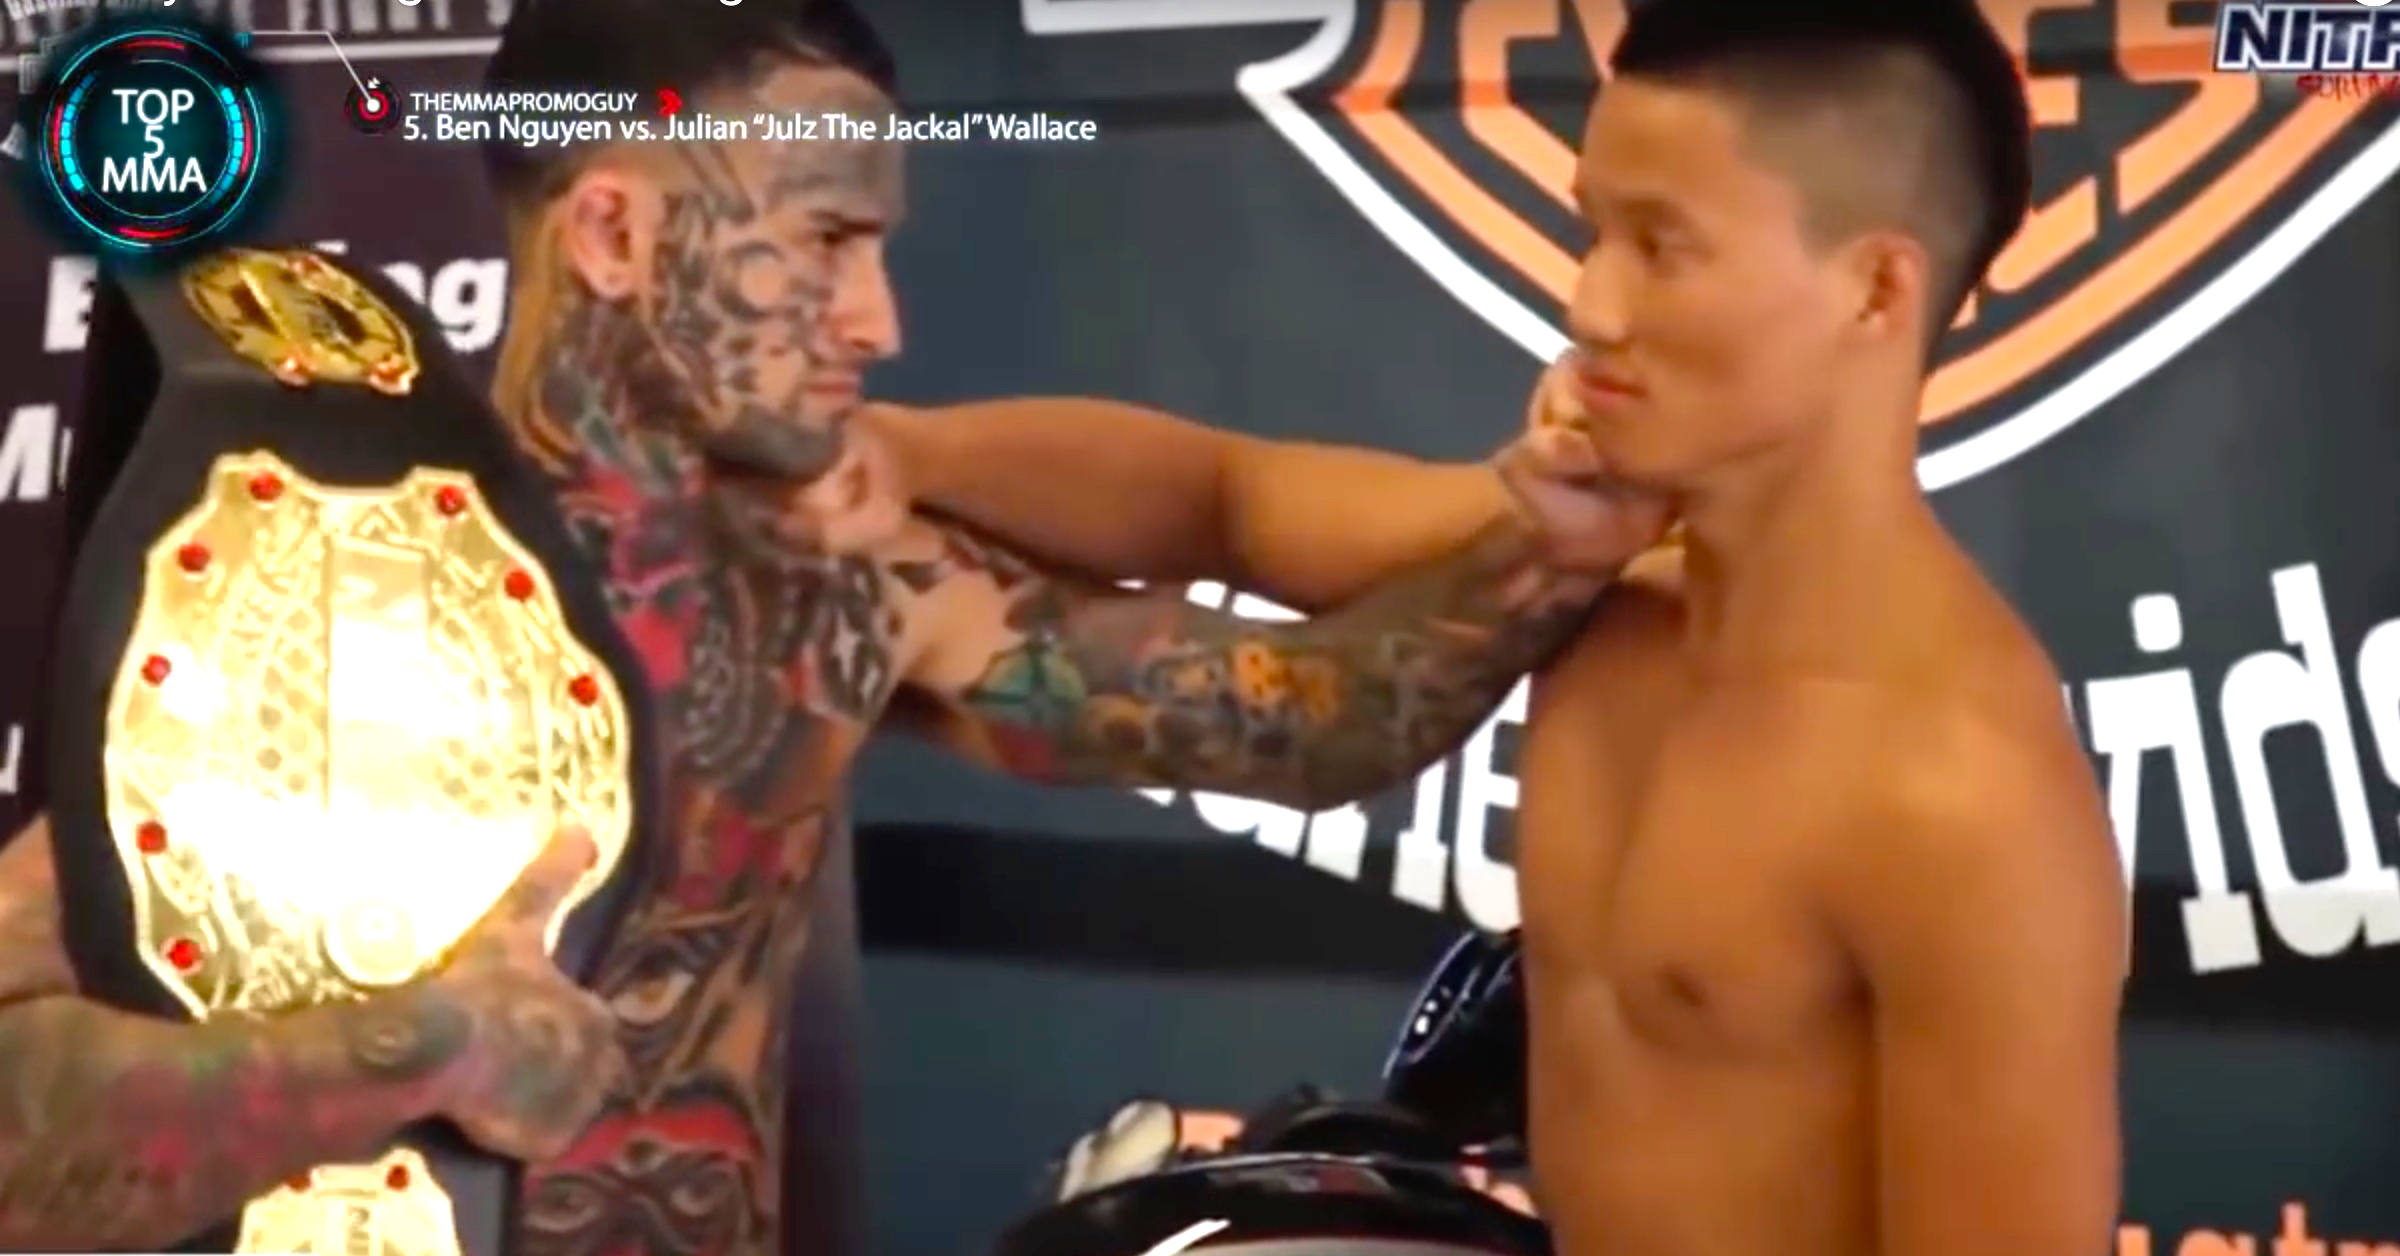 WATCH: Cocky MMA Fighters Getting Knocked The F*ck Out